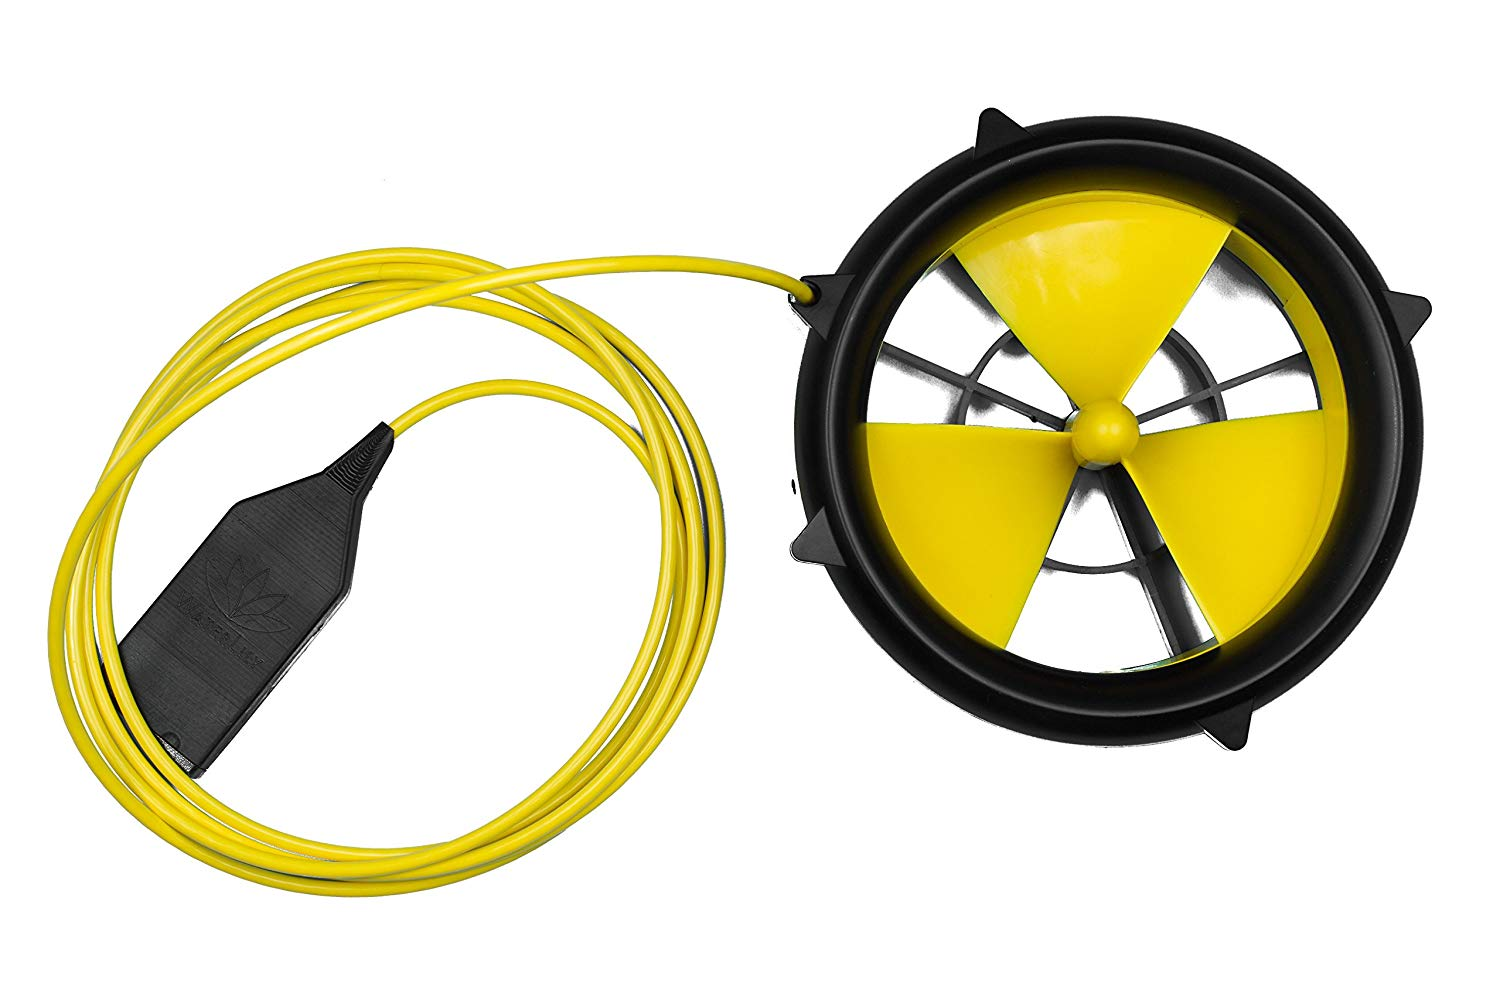 Waterlily Turbine Is A Portable Water And Wind Usb Charger